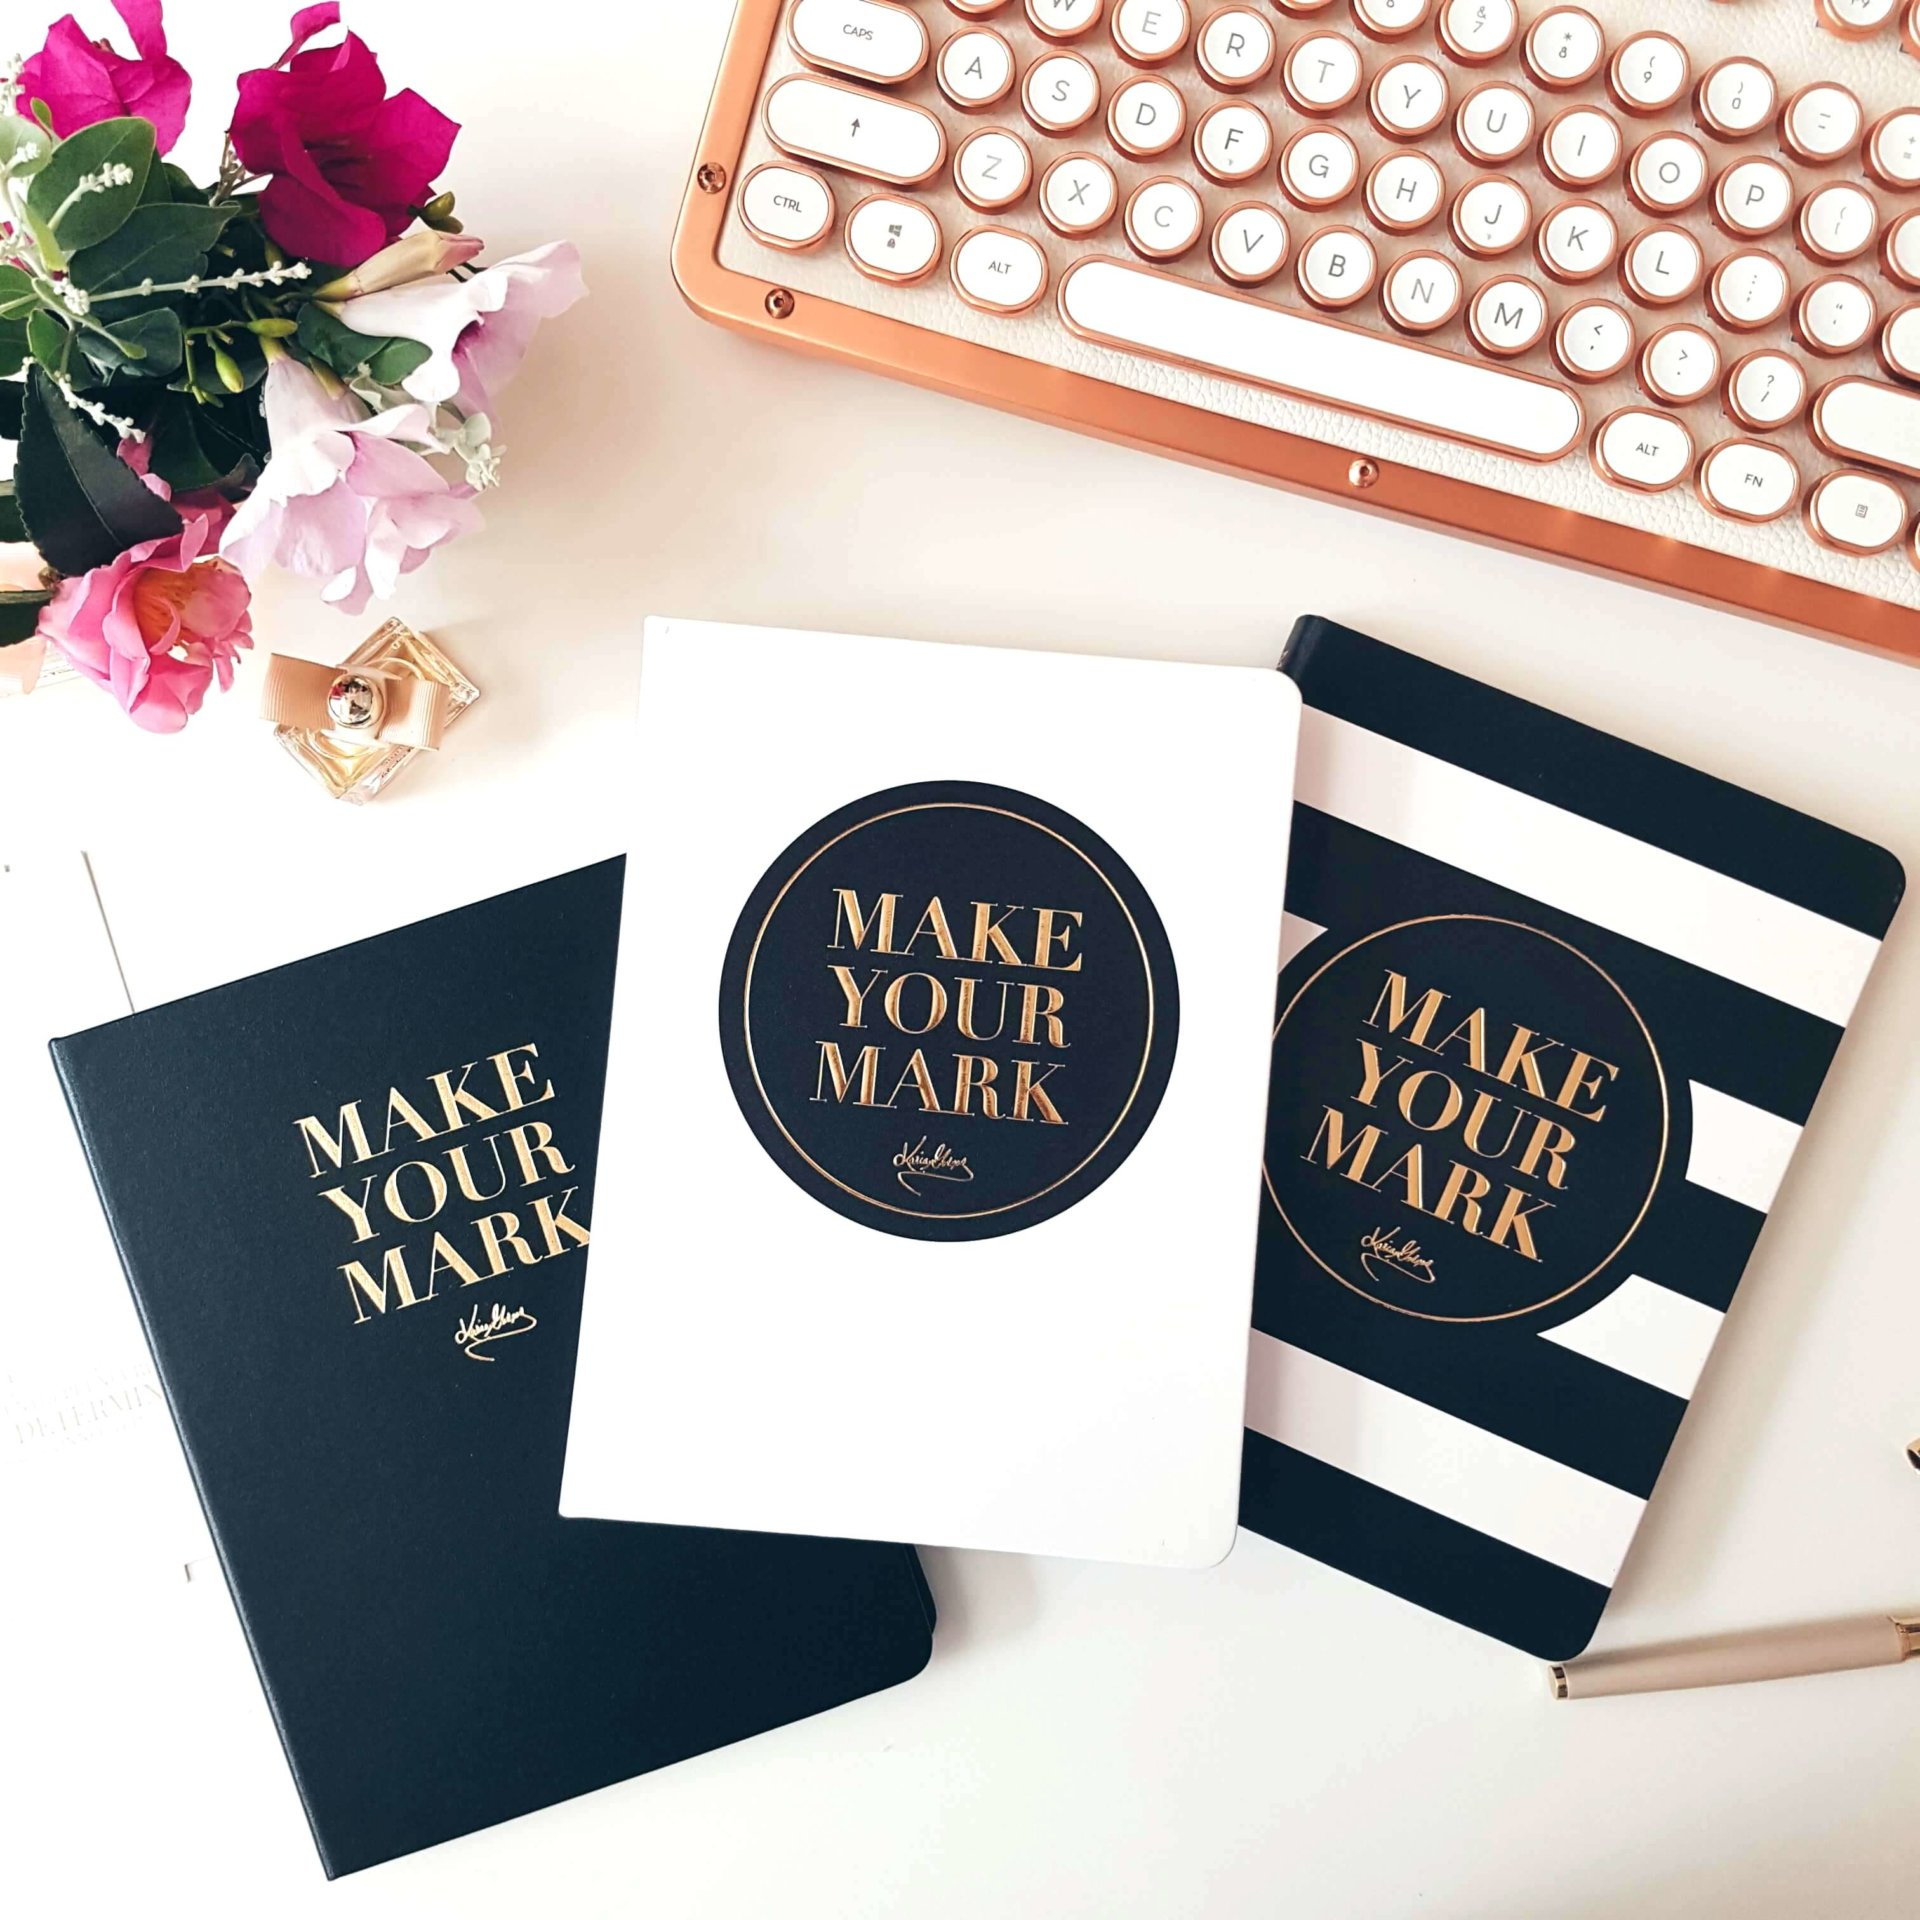 Make Your Mark Notebook, Daily Planner & Self-Coaching Journal Set